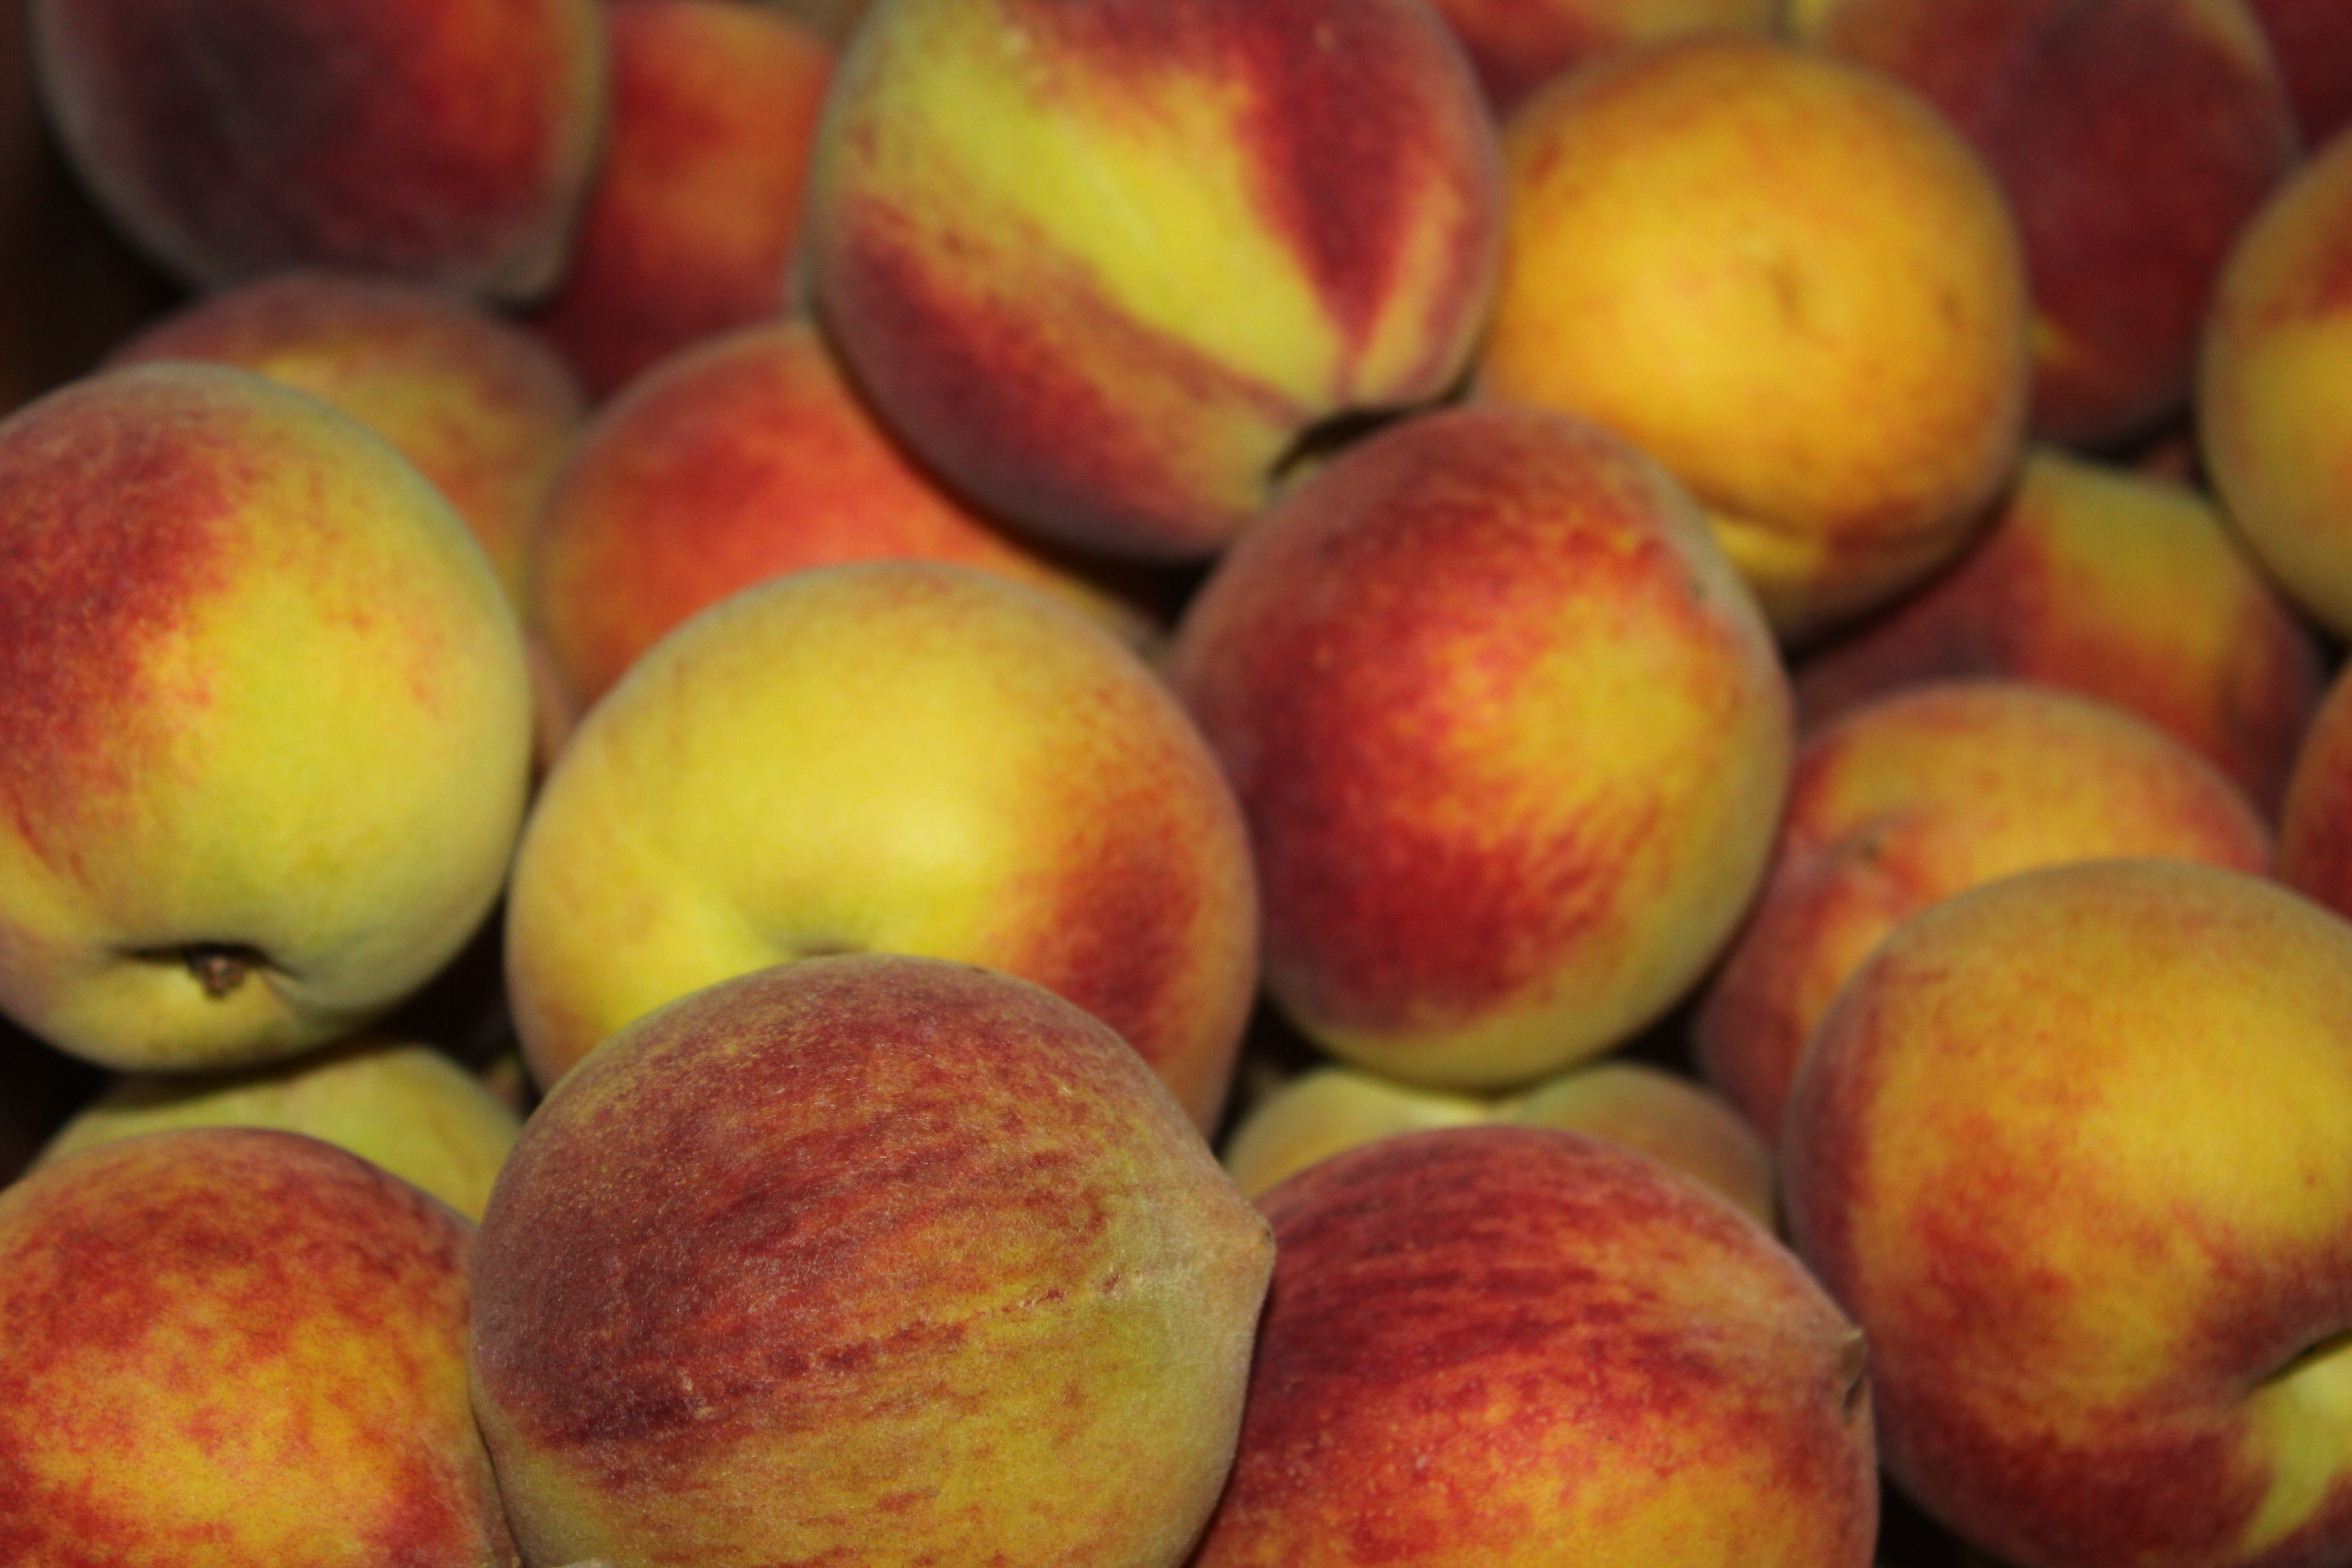 Our peaches arrived from Georgia this week during a Peach Tour.